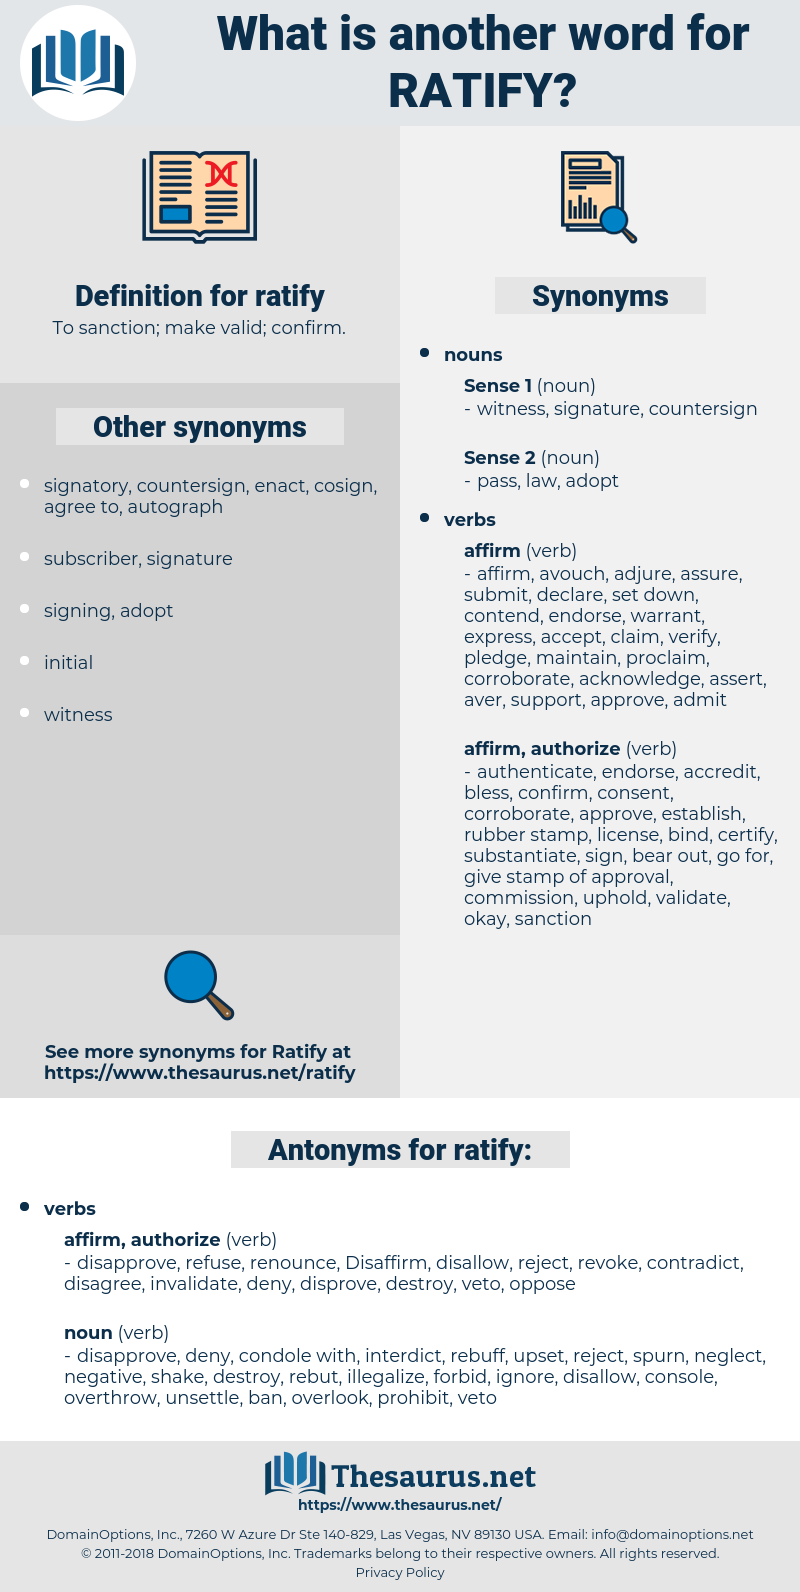 ratify, synonym ratify, another word for ratify, words like ratify, thesaurus ratify